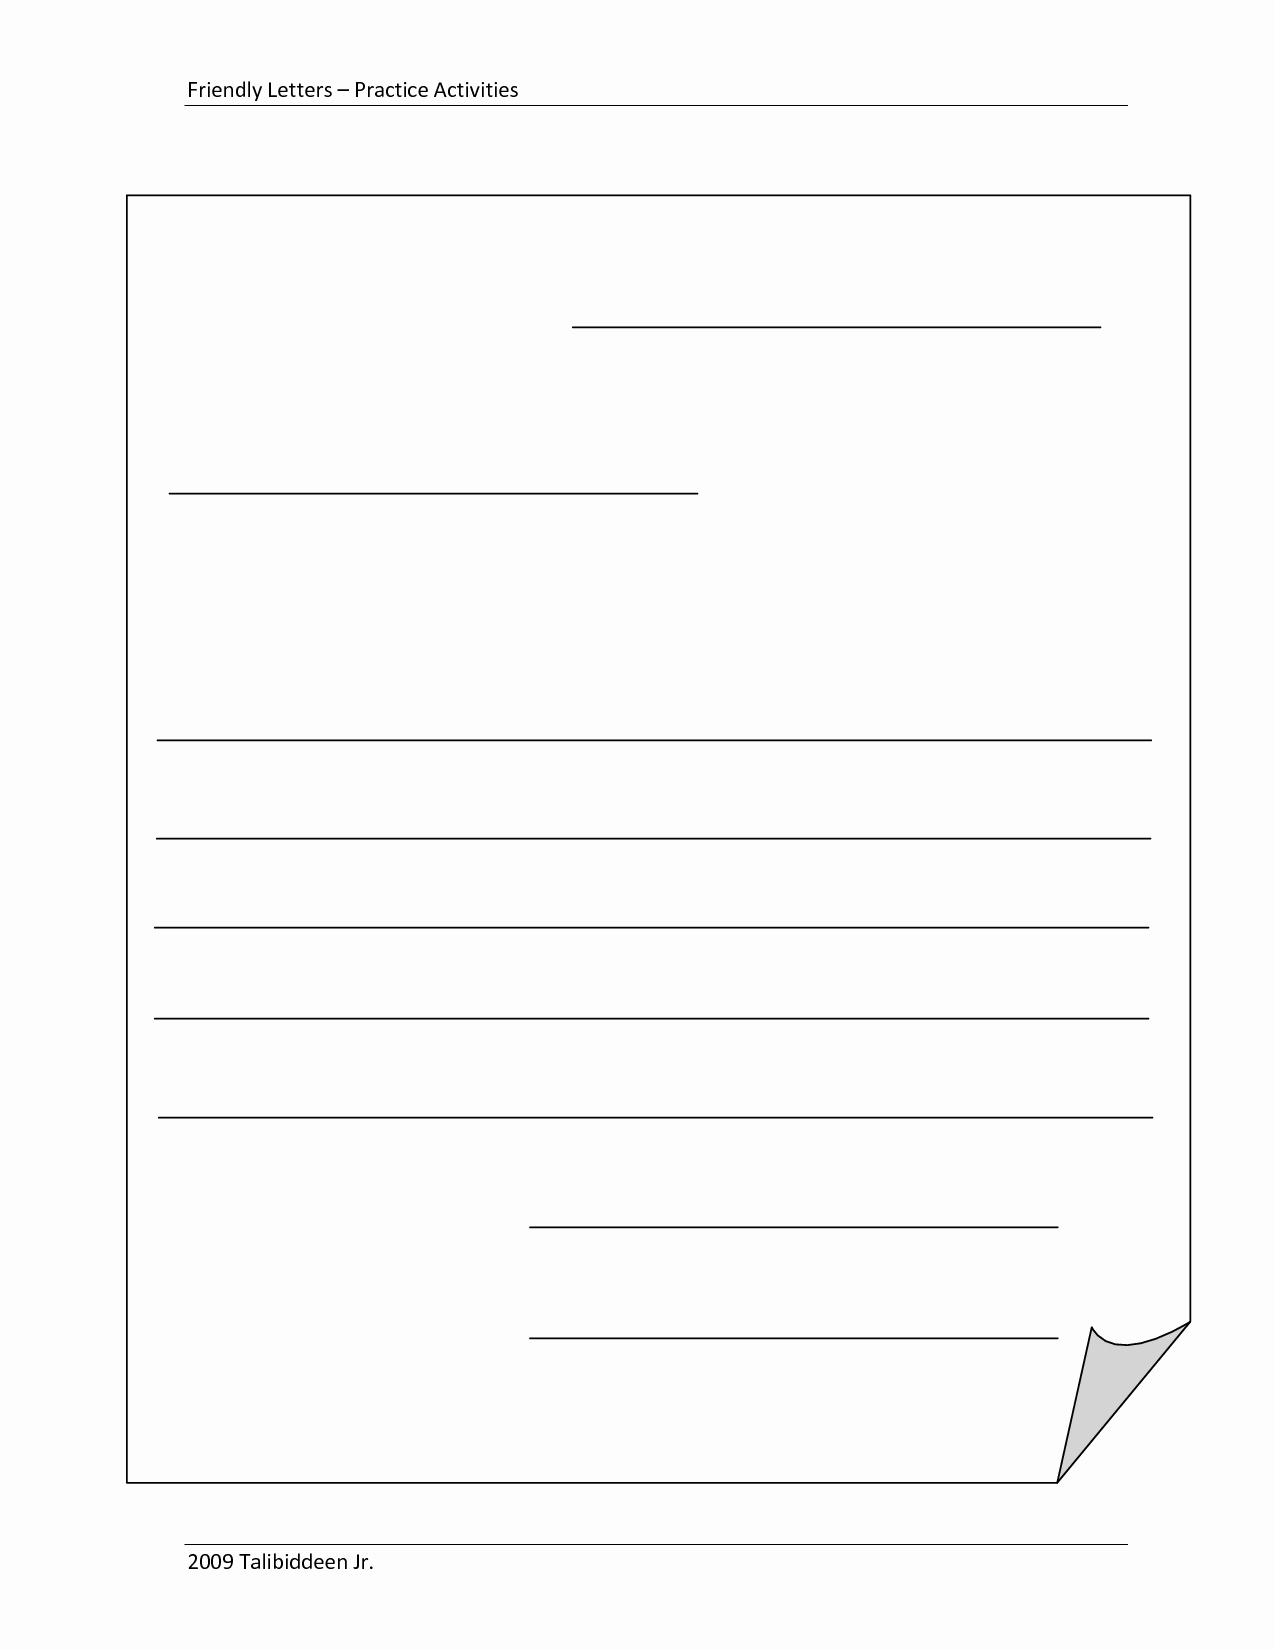 Business Plan Template for Kids Best Of Blank Letter Template for Kids